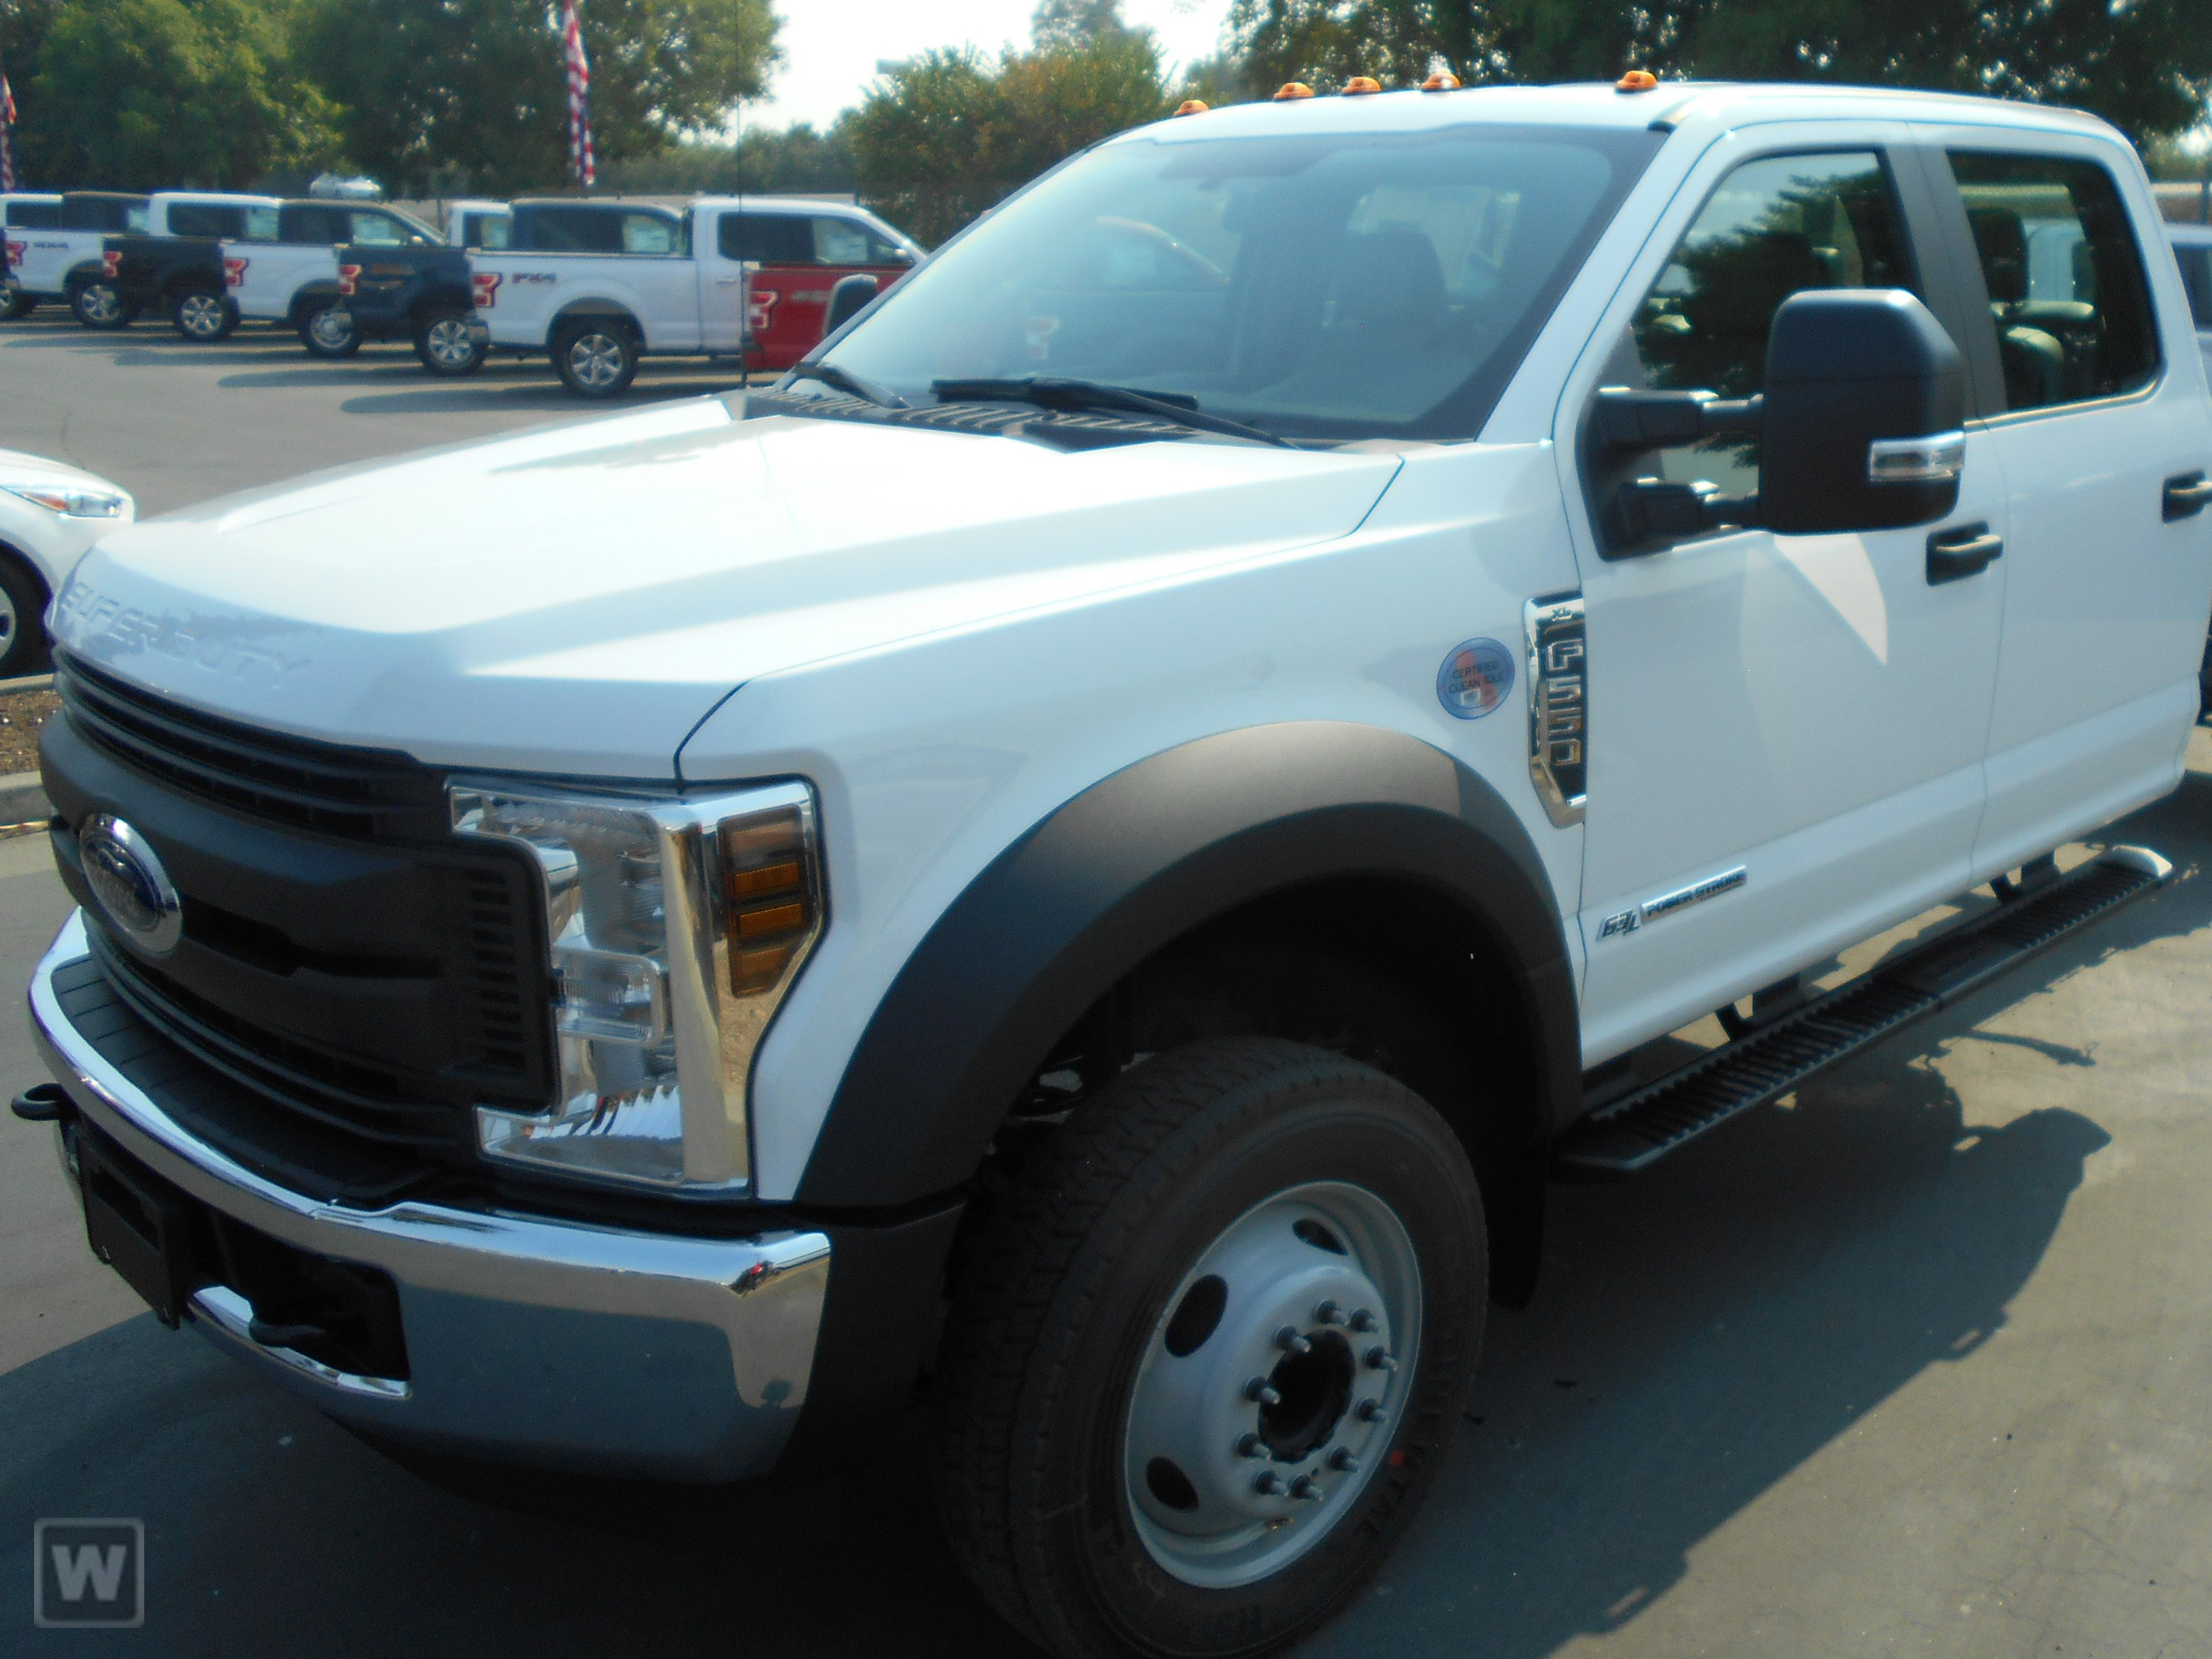 2019 F-550 Crew Cab DRW 4x2, Scelzi Contractor Body #5847 - photo 1